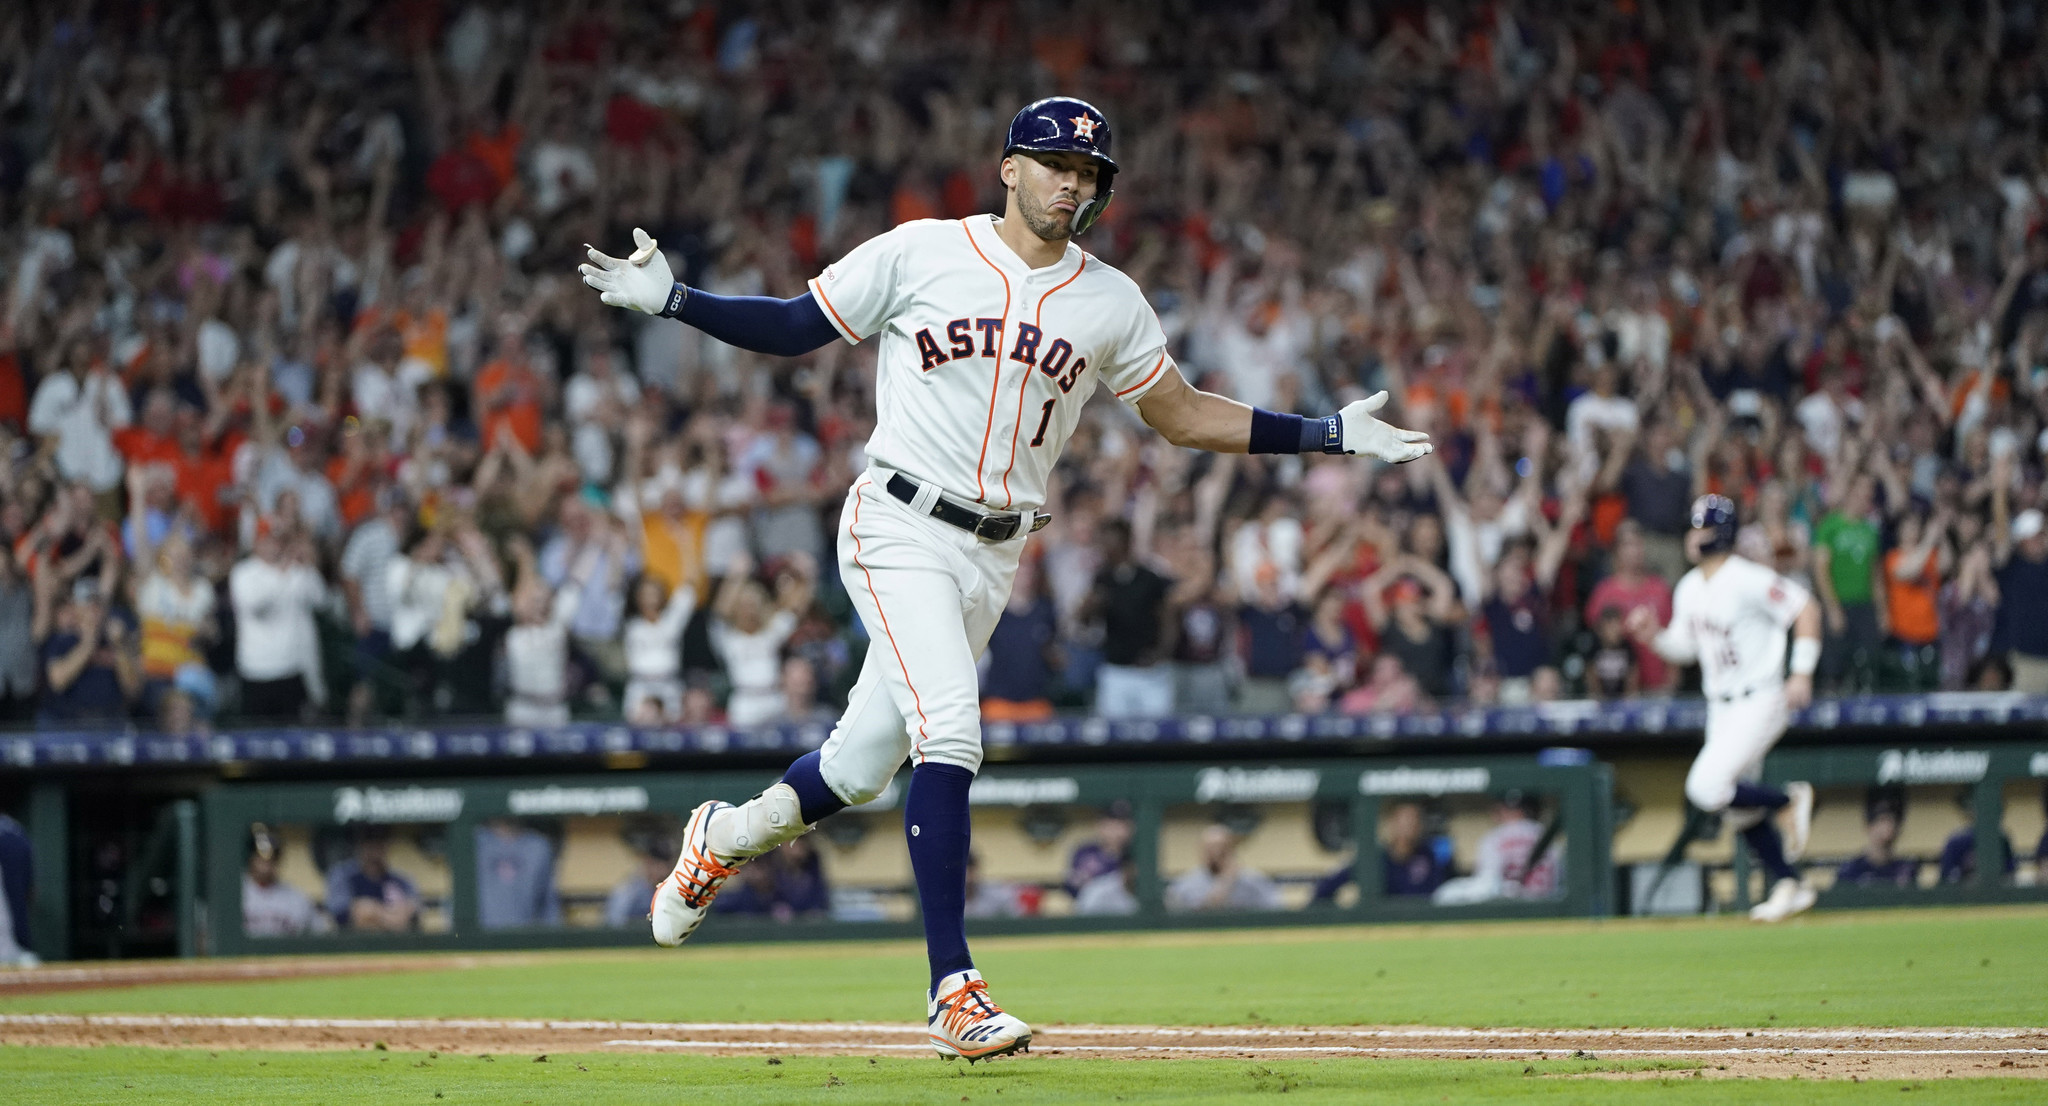 Jim Deshaies gives insight into the Astros as the Cubs hit the road. Plus, Lucas Giolito's All-Star form is discussed on the Deep Dish Baseball podcast.